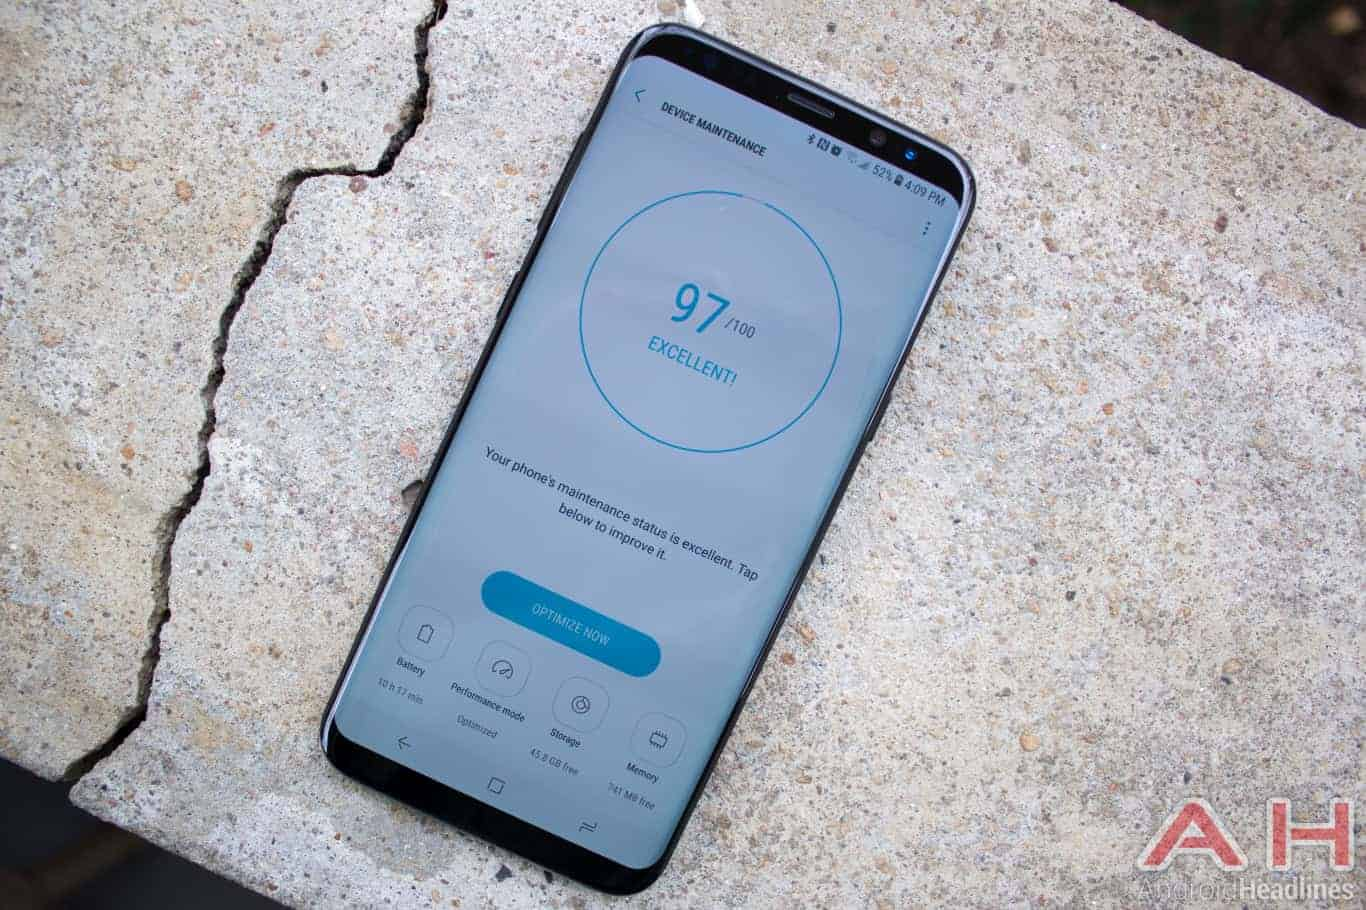 As Can Be Expected From The Absolute Latest In Mobile Processing Technology Galaxy S8 Family Reigns Supreme At Top Of Charts For Benchmarks